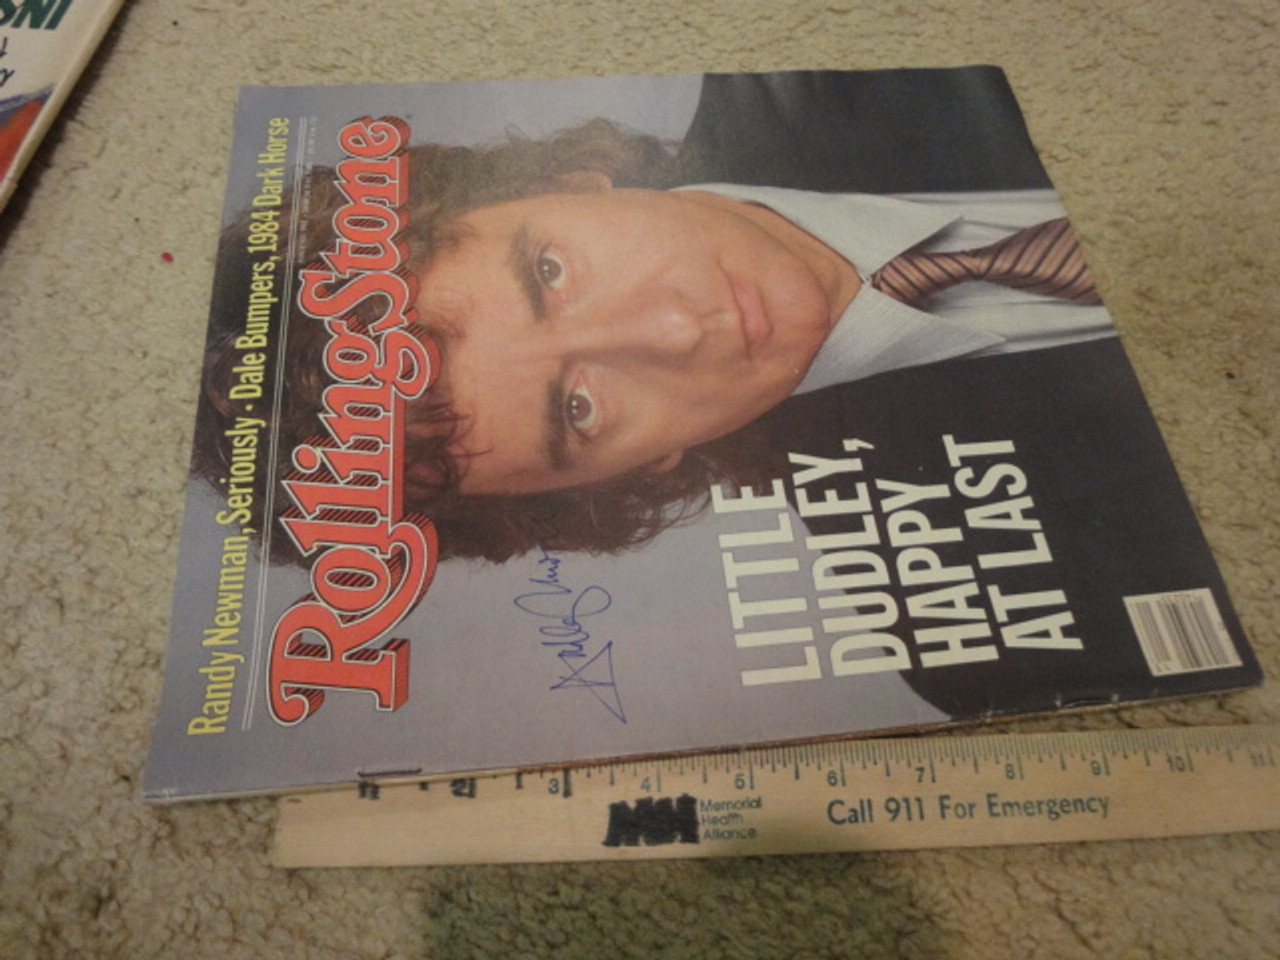 Moore, Dudley Rolling Stone Magazine 1983 Signed Autograph Color Cover Photo